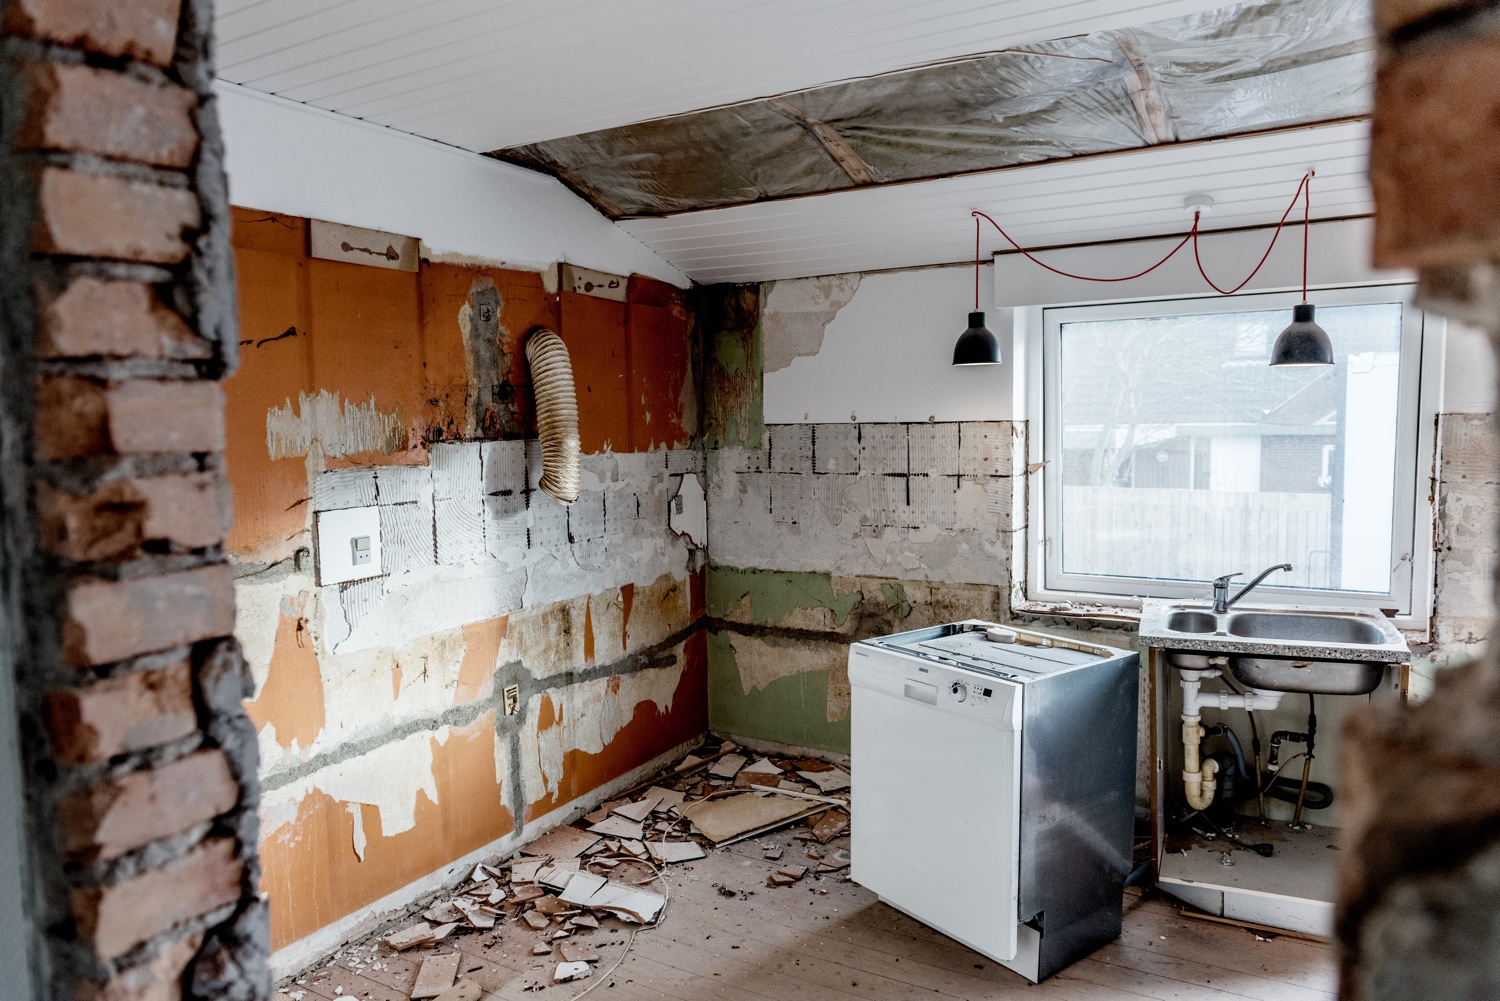 Stripping-the-old-kitchen_Ørhagevej-84.jpg